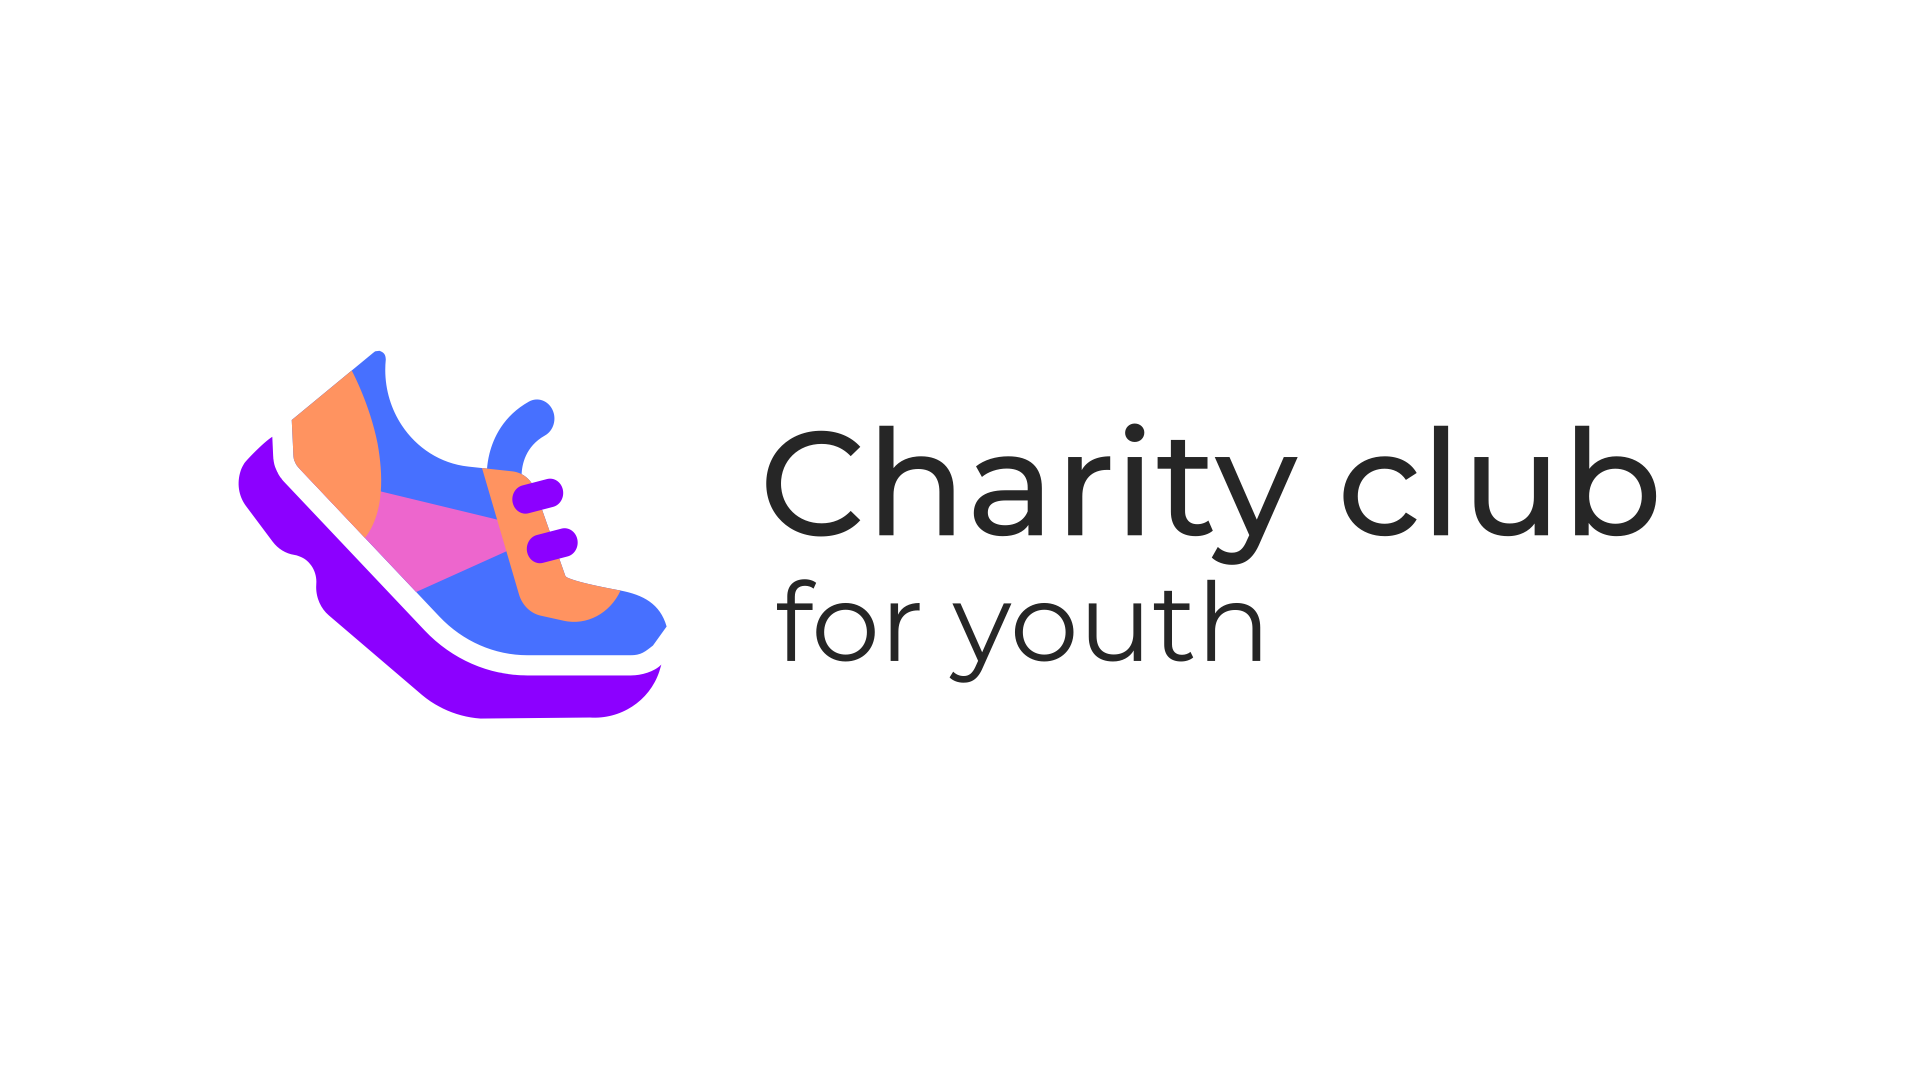 Charity for youth